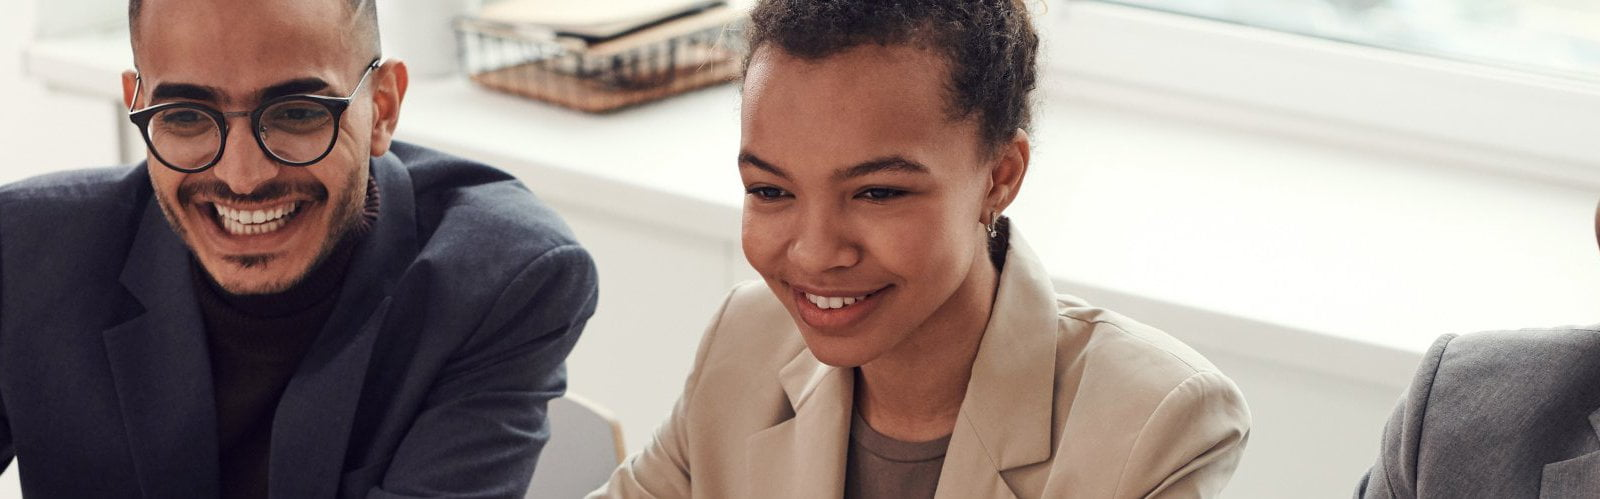 photo-of-three-people-smiling-while-having-a-meeting-3184338